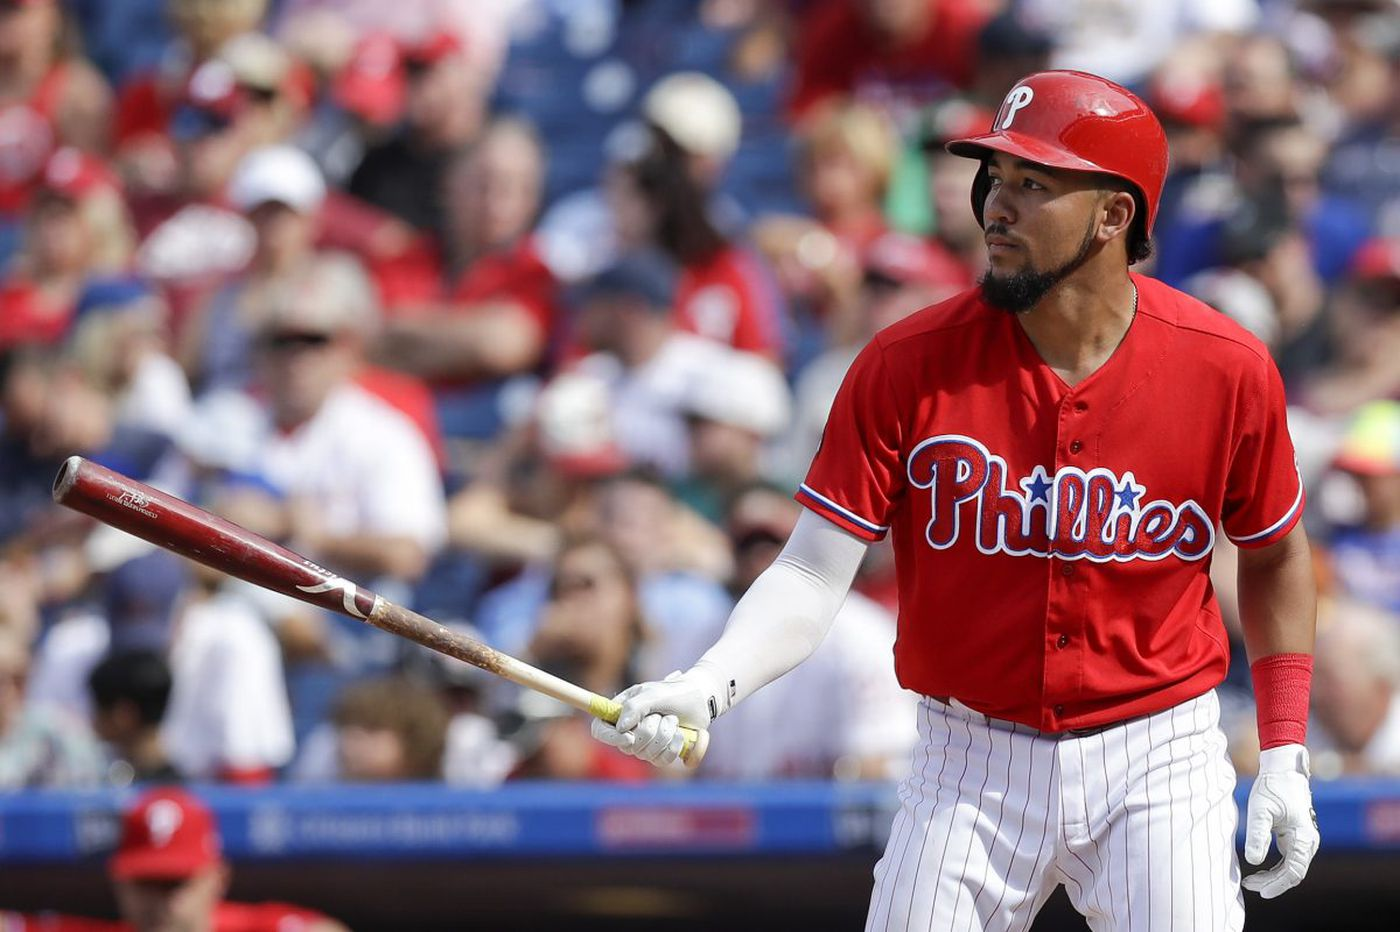 Phillies' GM Matt Klentak said team could test newest baseball trend: 'positional flexibility'